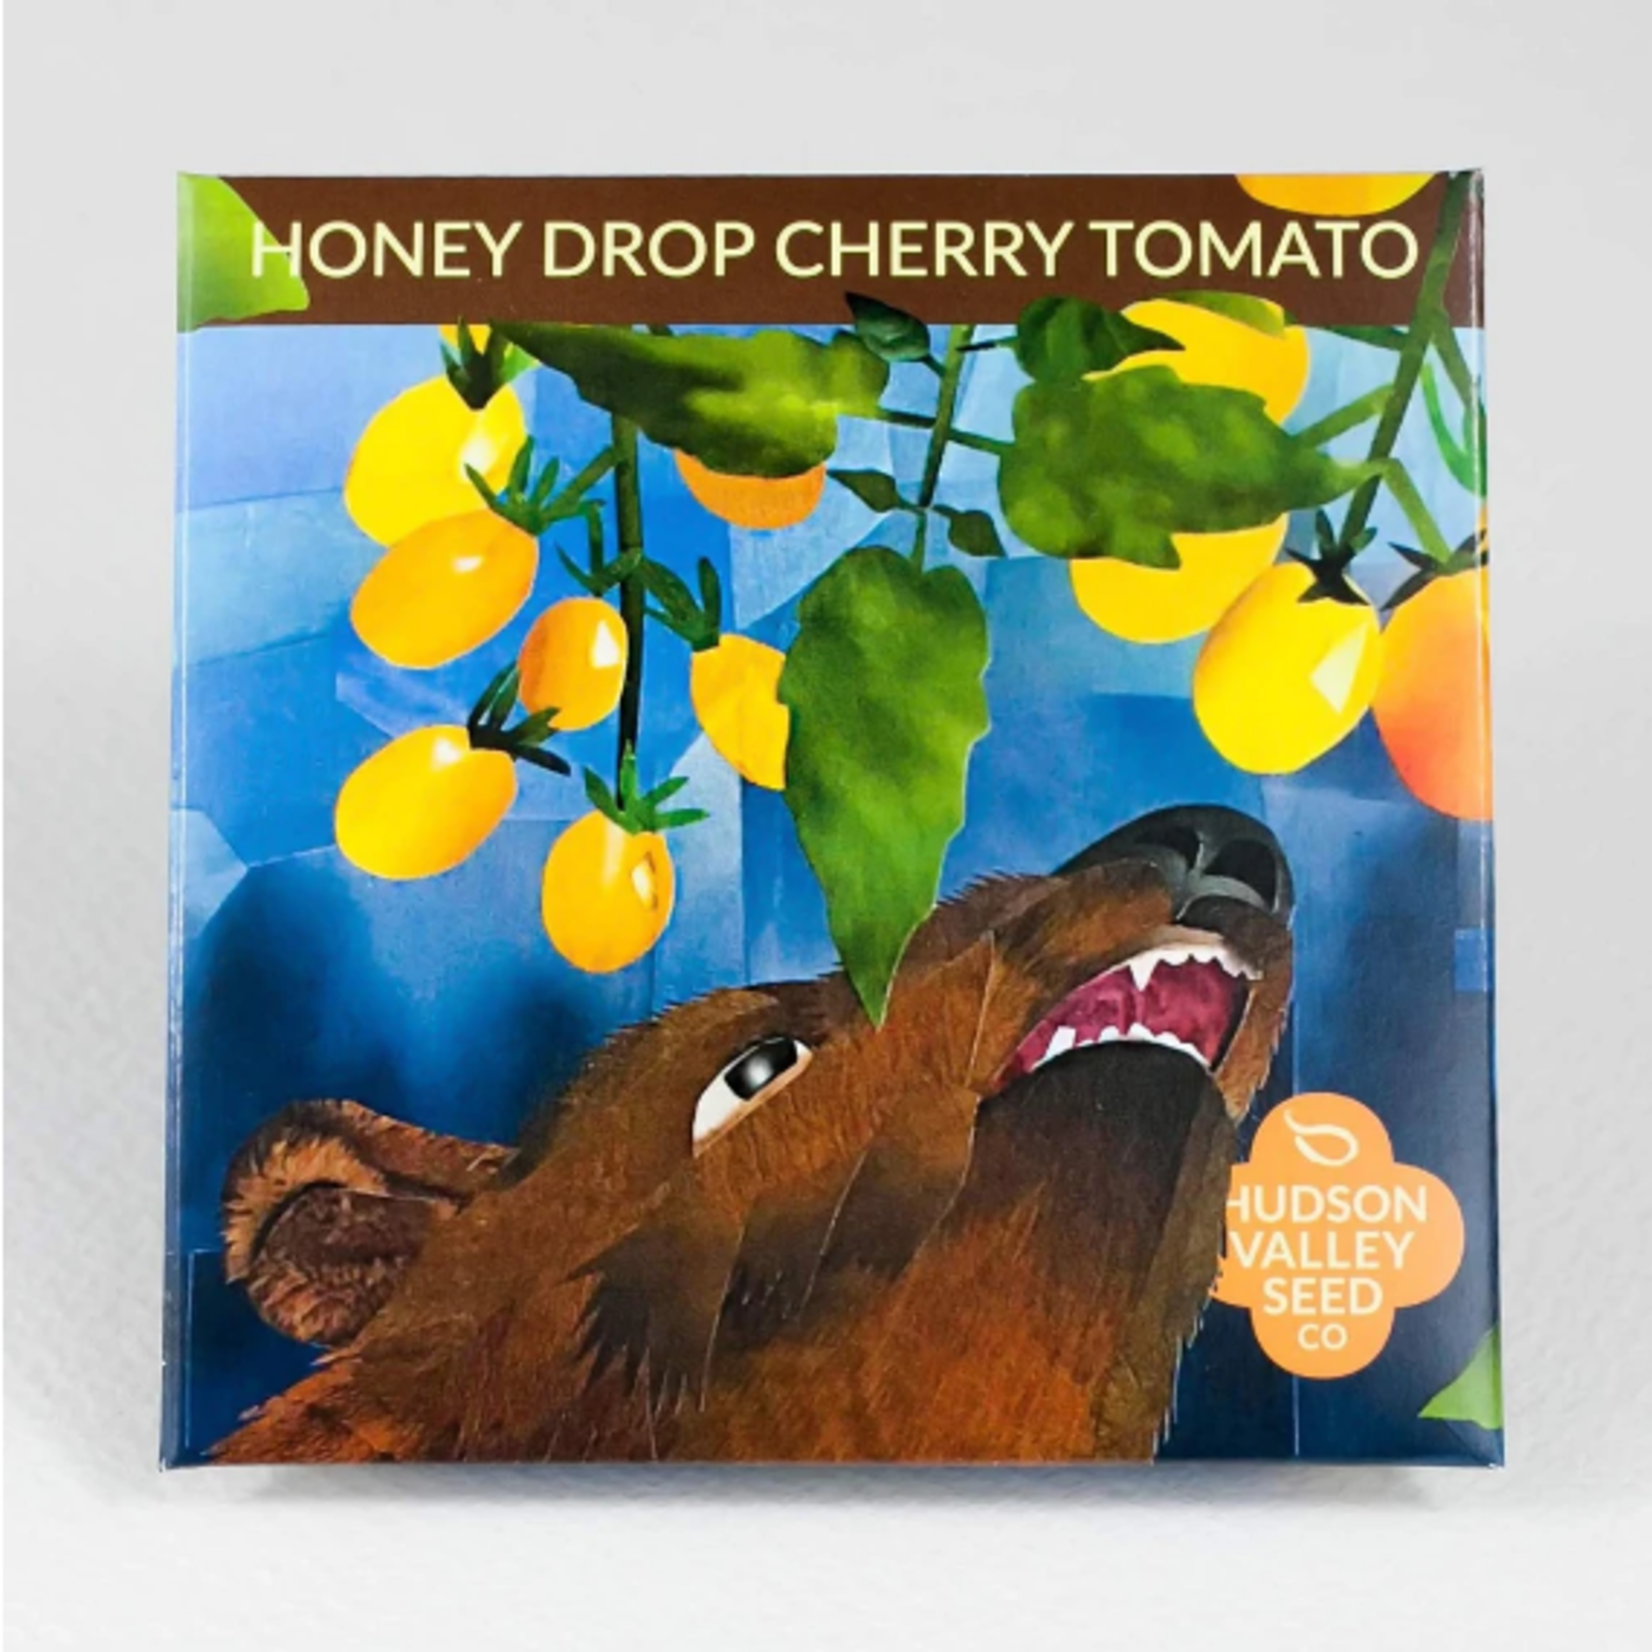 Hudson Valley Seeds Honey Drop Cherry Tomato Seeds